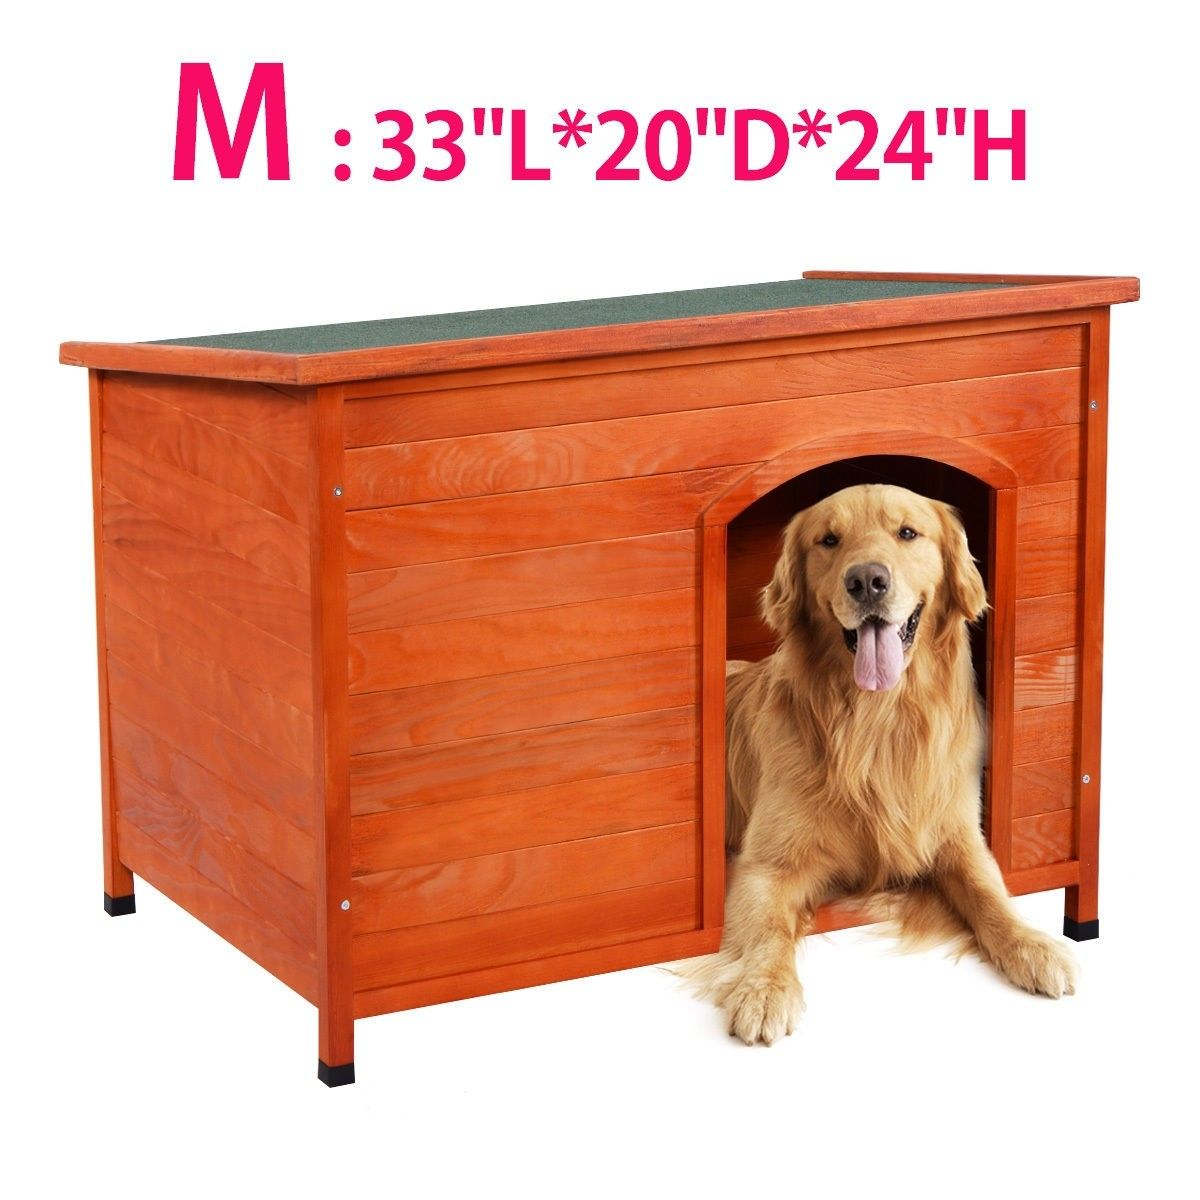 Outdoor Wood Weather Resistant Home Ground Dog House With Images Wood Dog House Dog House Outdoor Cat Shelter